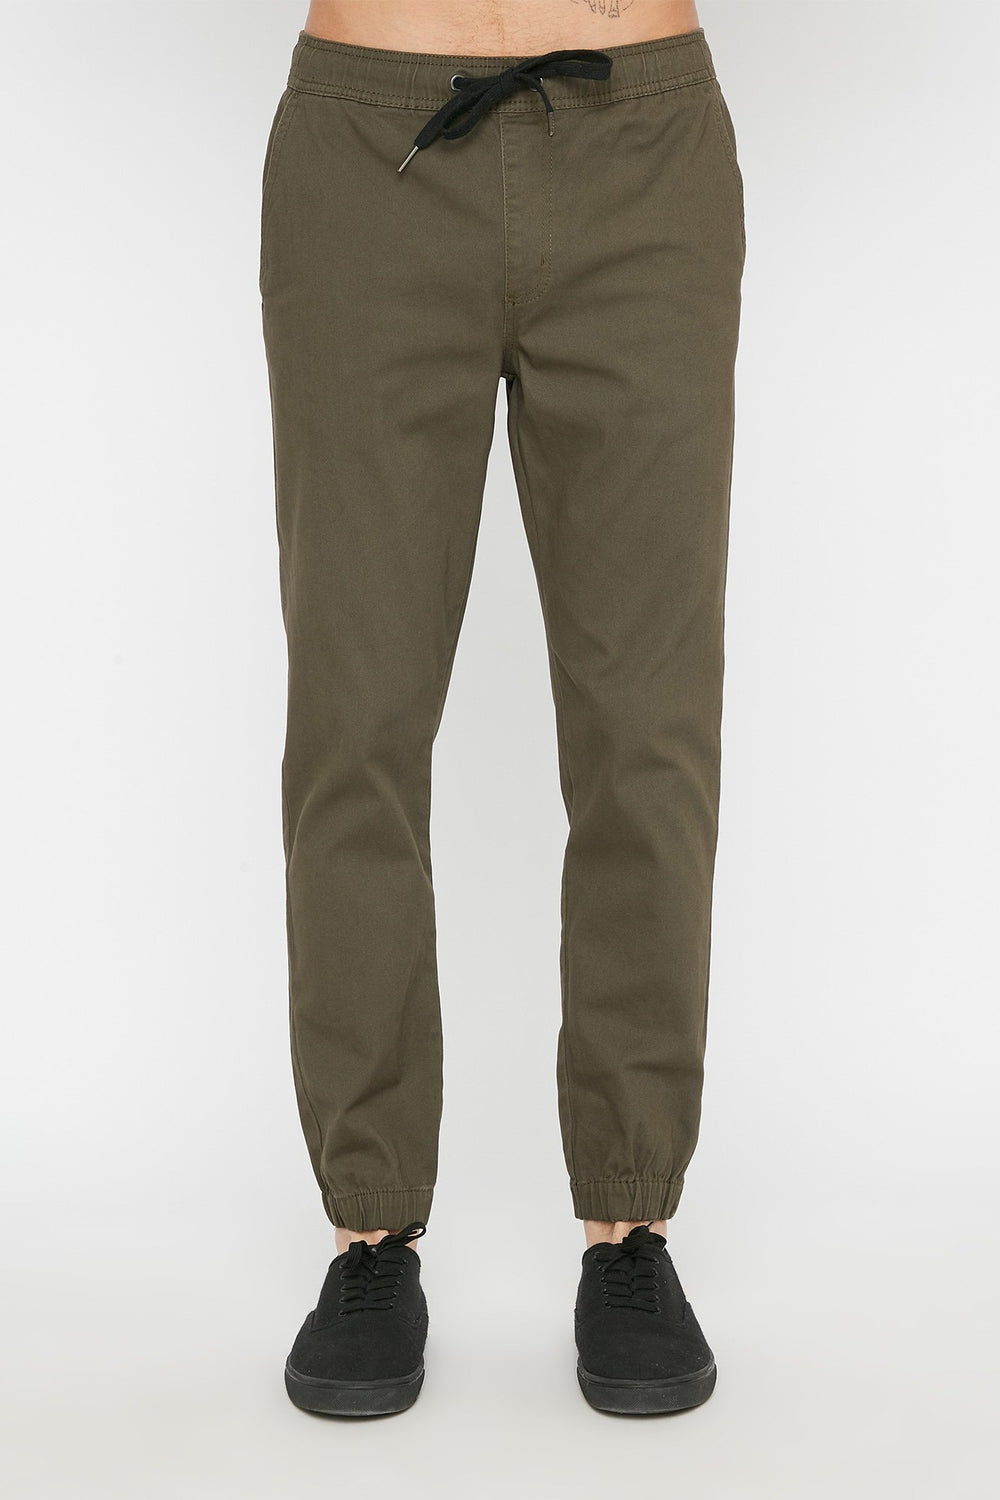 West49 Mens Solid Twill Basic Jogger Khaki